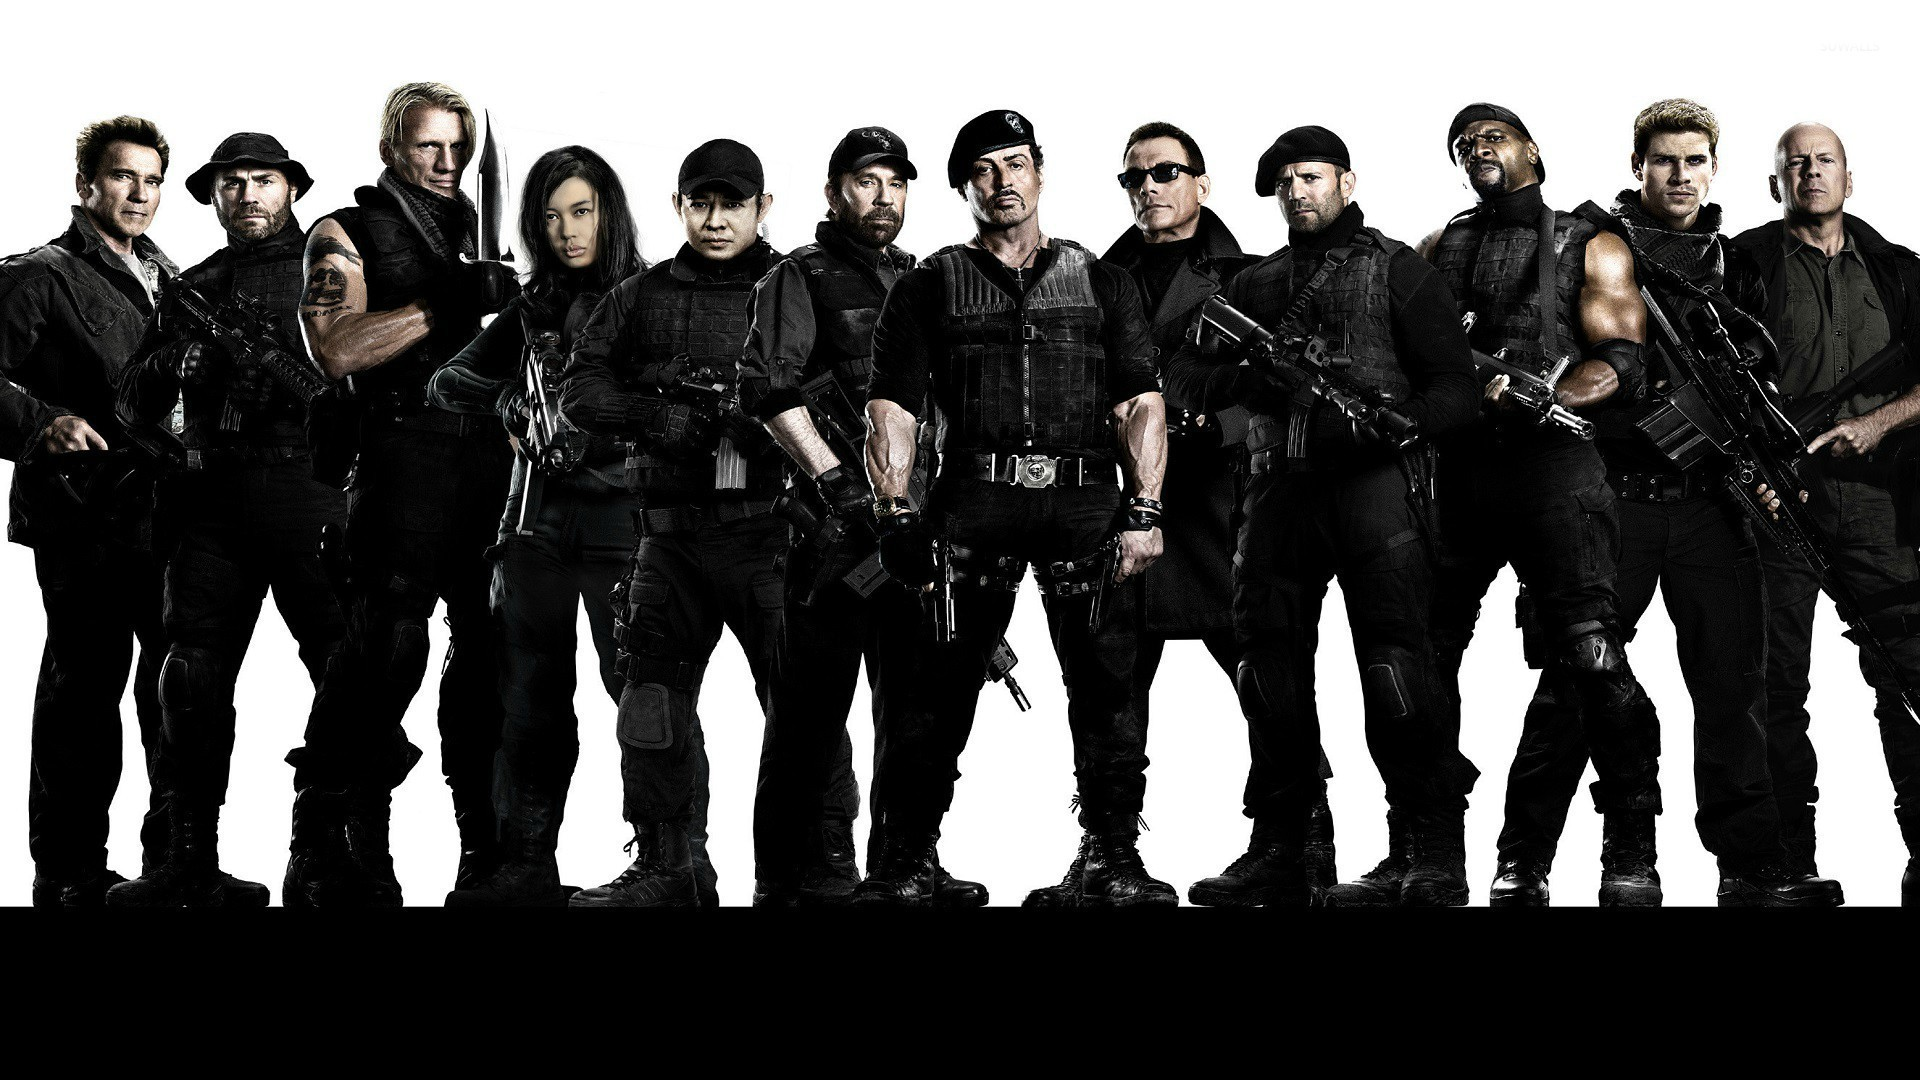 The Expendables wallpaper jpg